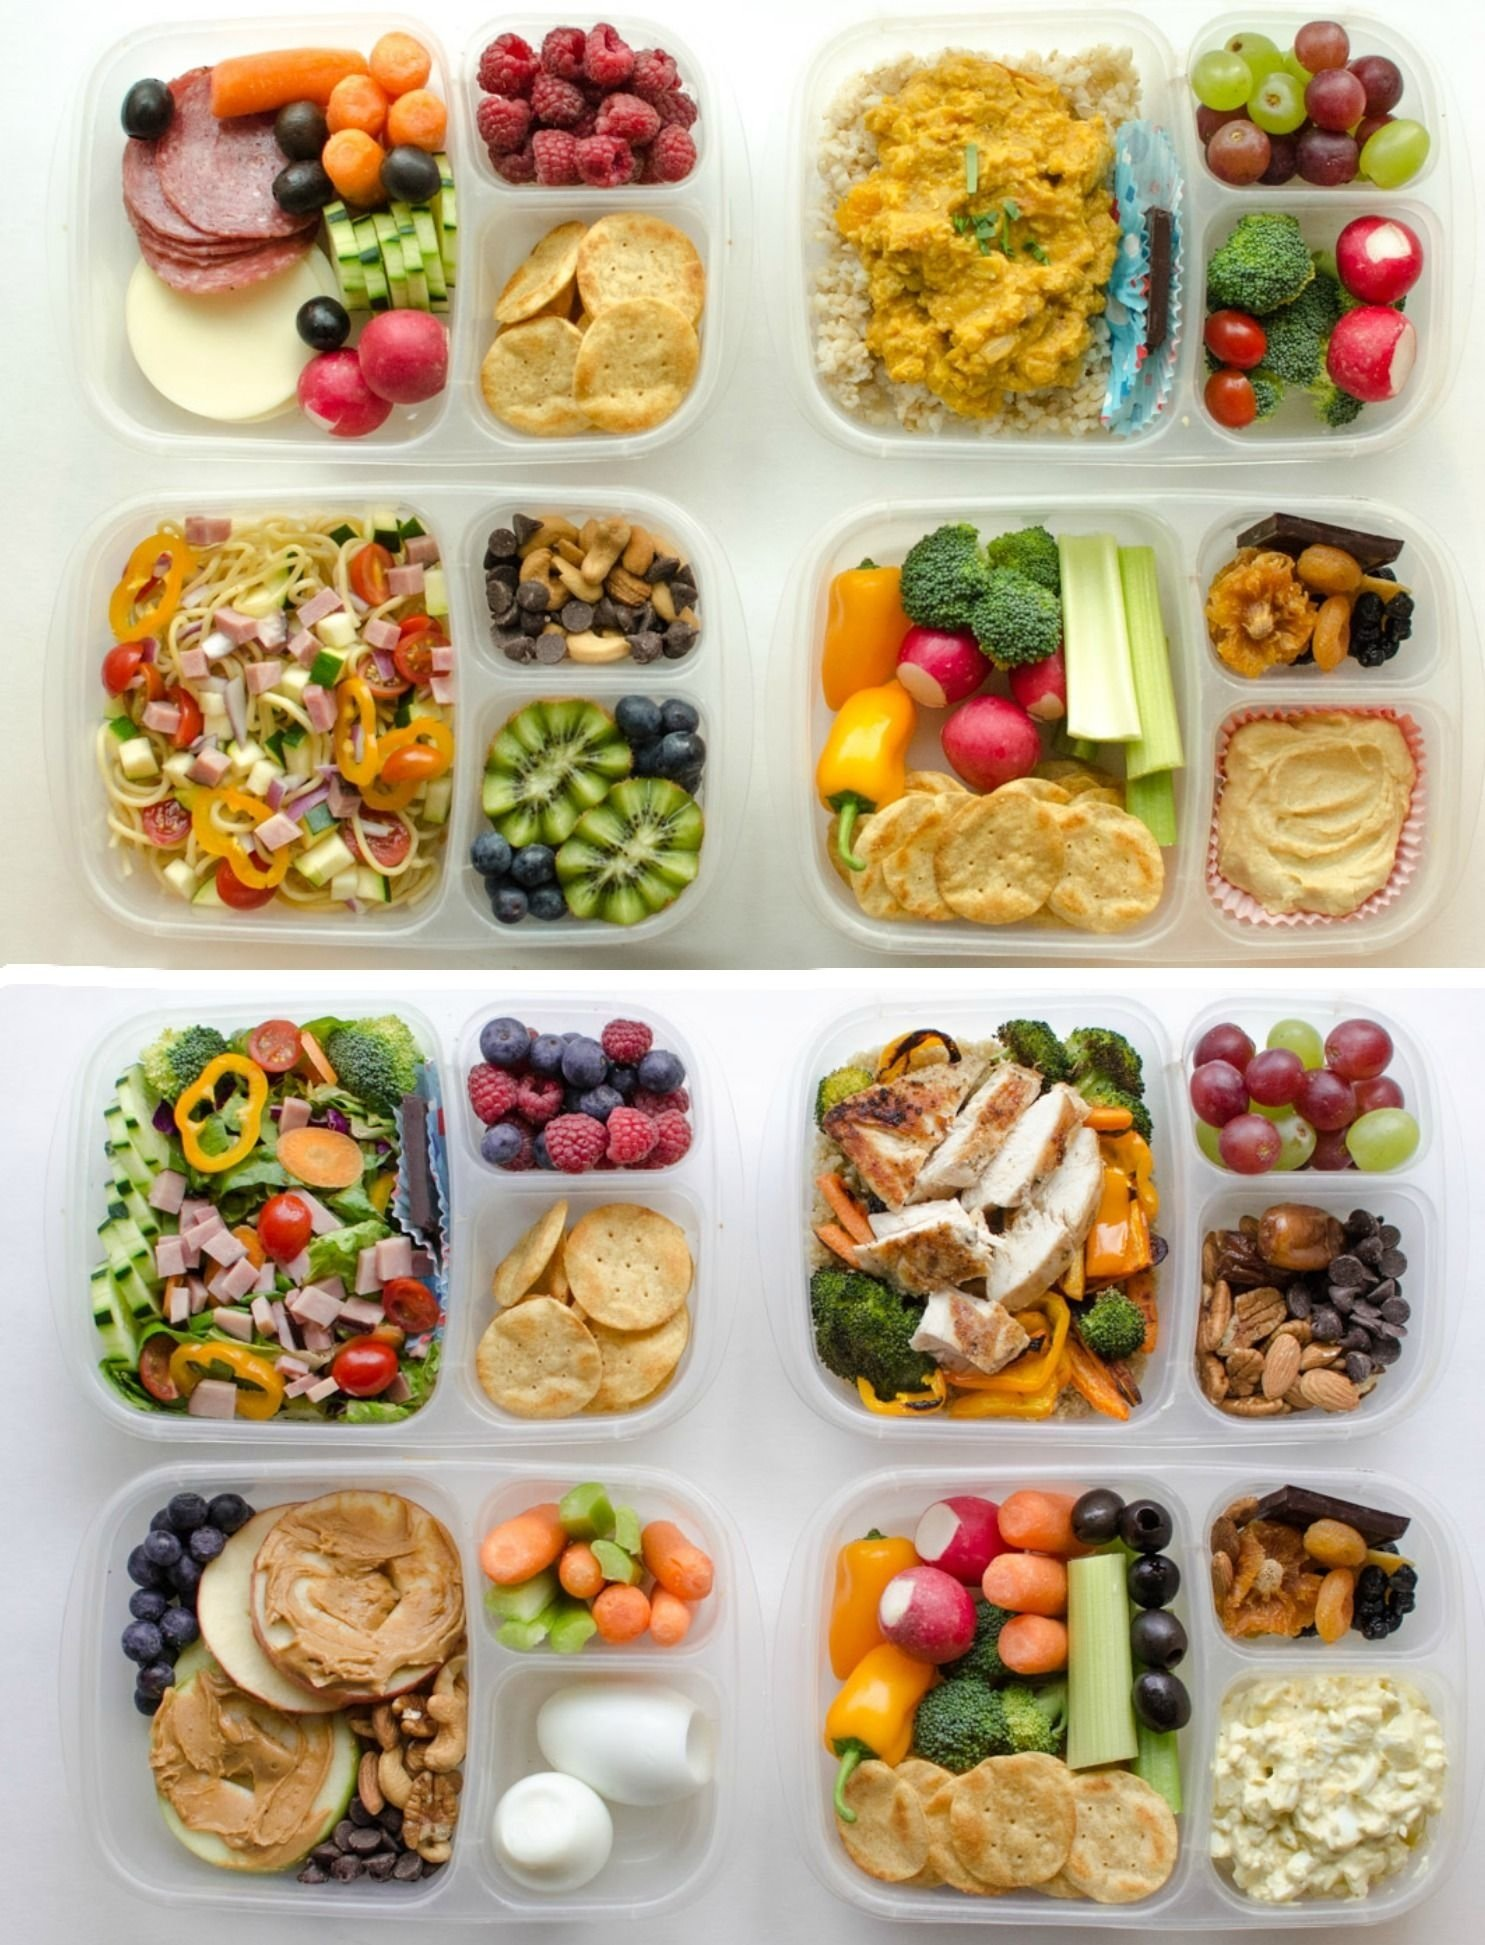 10 Attractive Bento Box Lunch Ideas For Adults 8 adult lunch box ideas lunch box ideas lunch box and lunches 6 2021